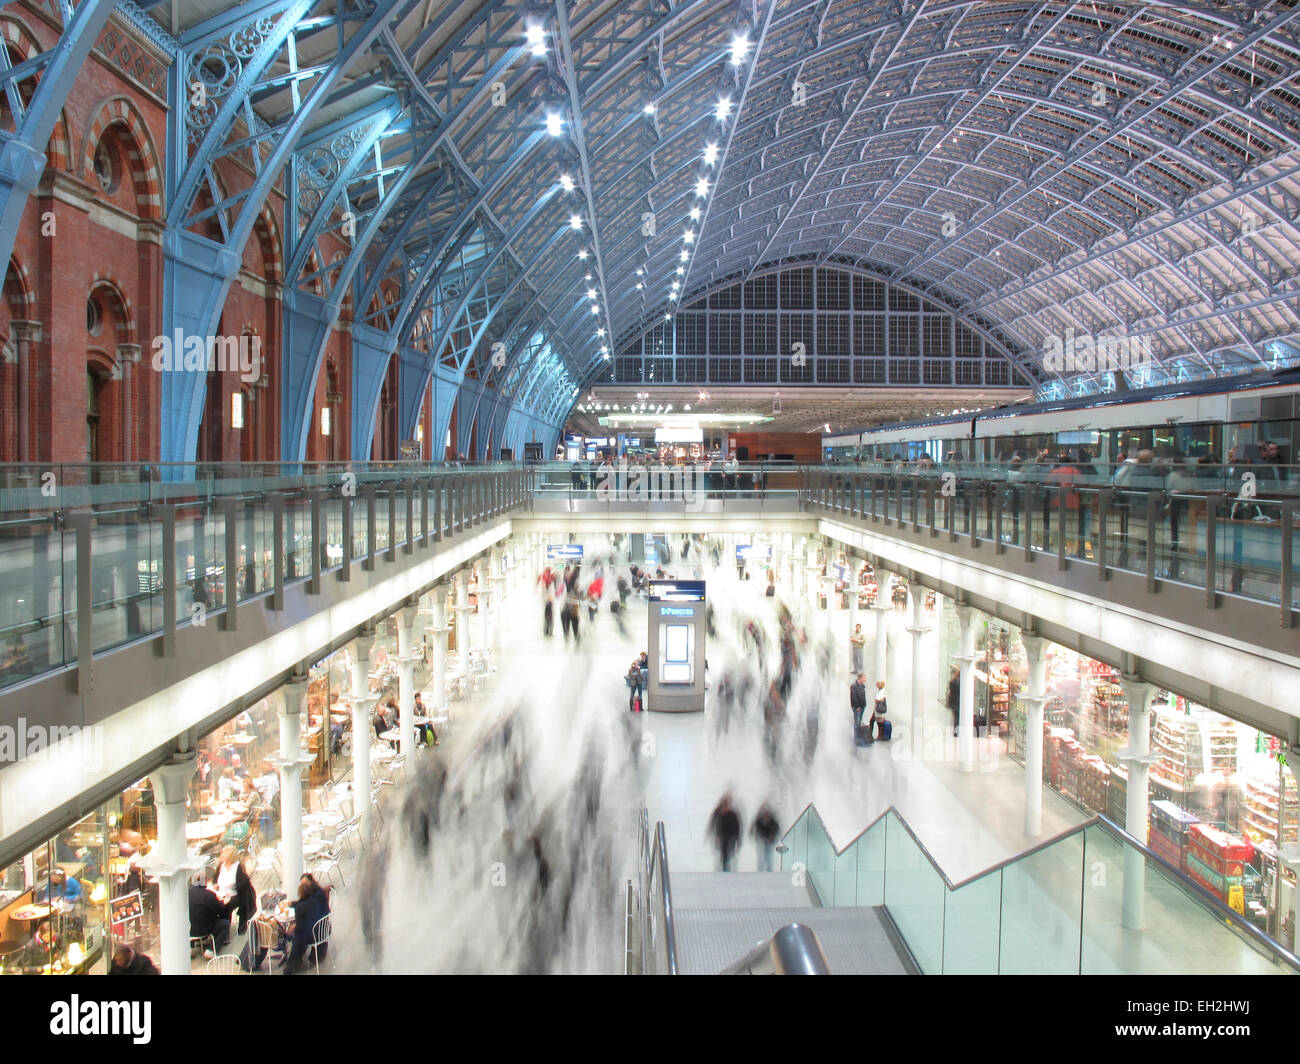 Travellers and shoppers at St Pancras station London - Stock Image